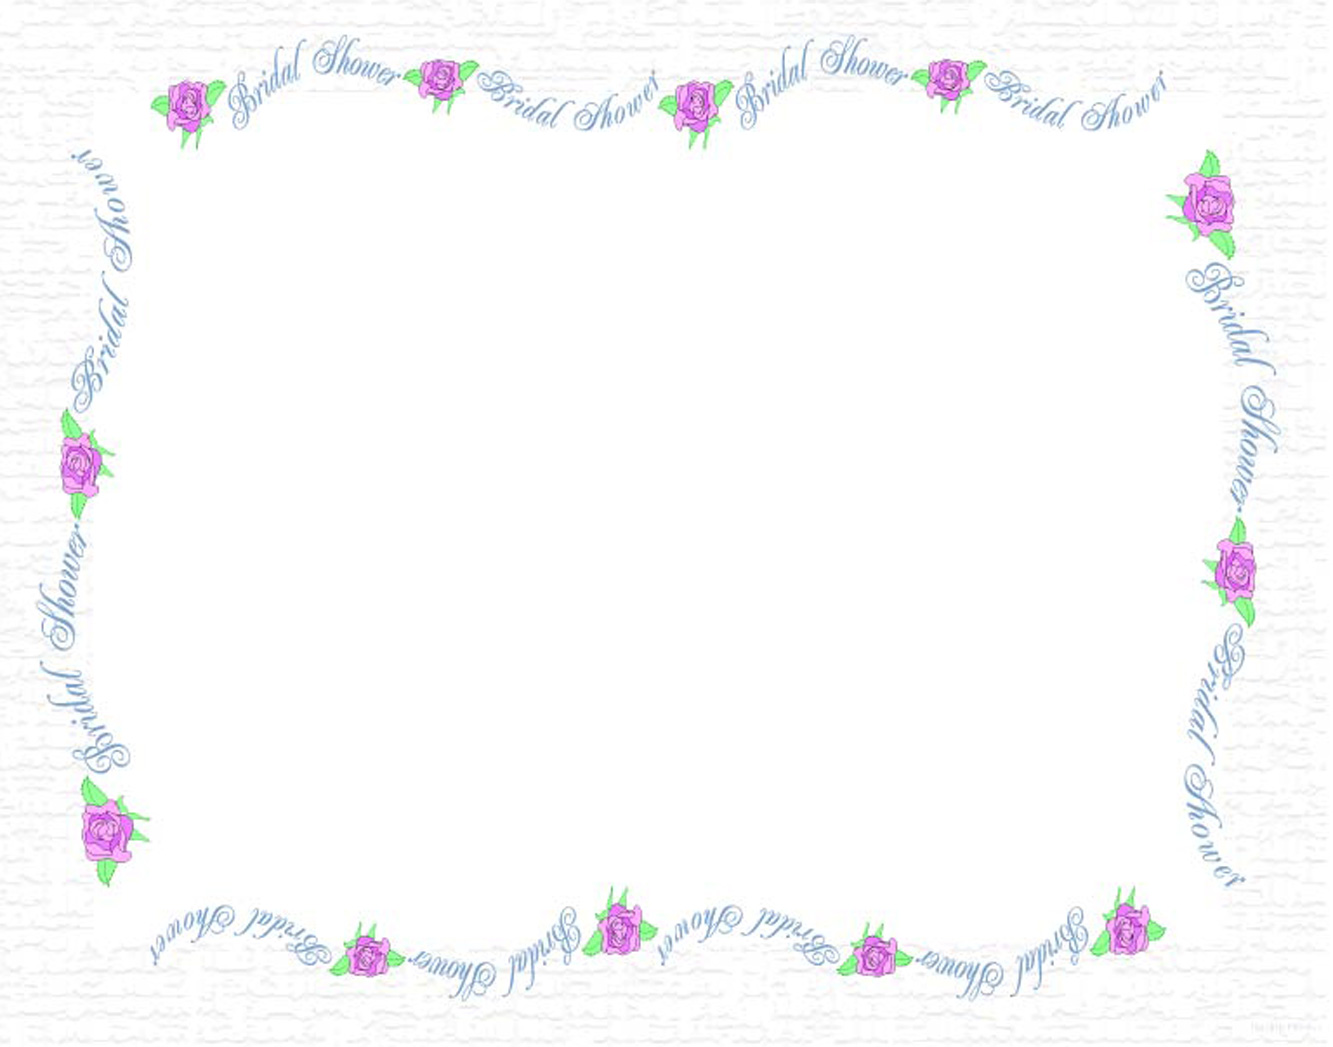 Wedding Shower Borders Free Clipart #1